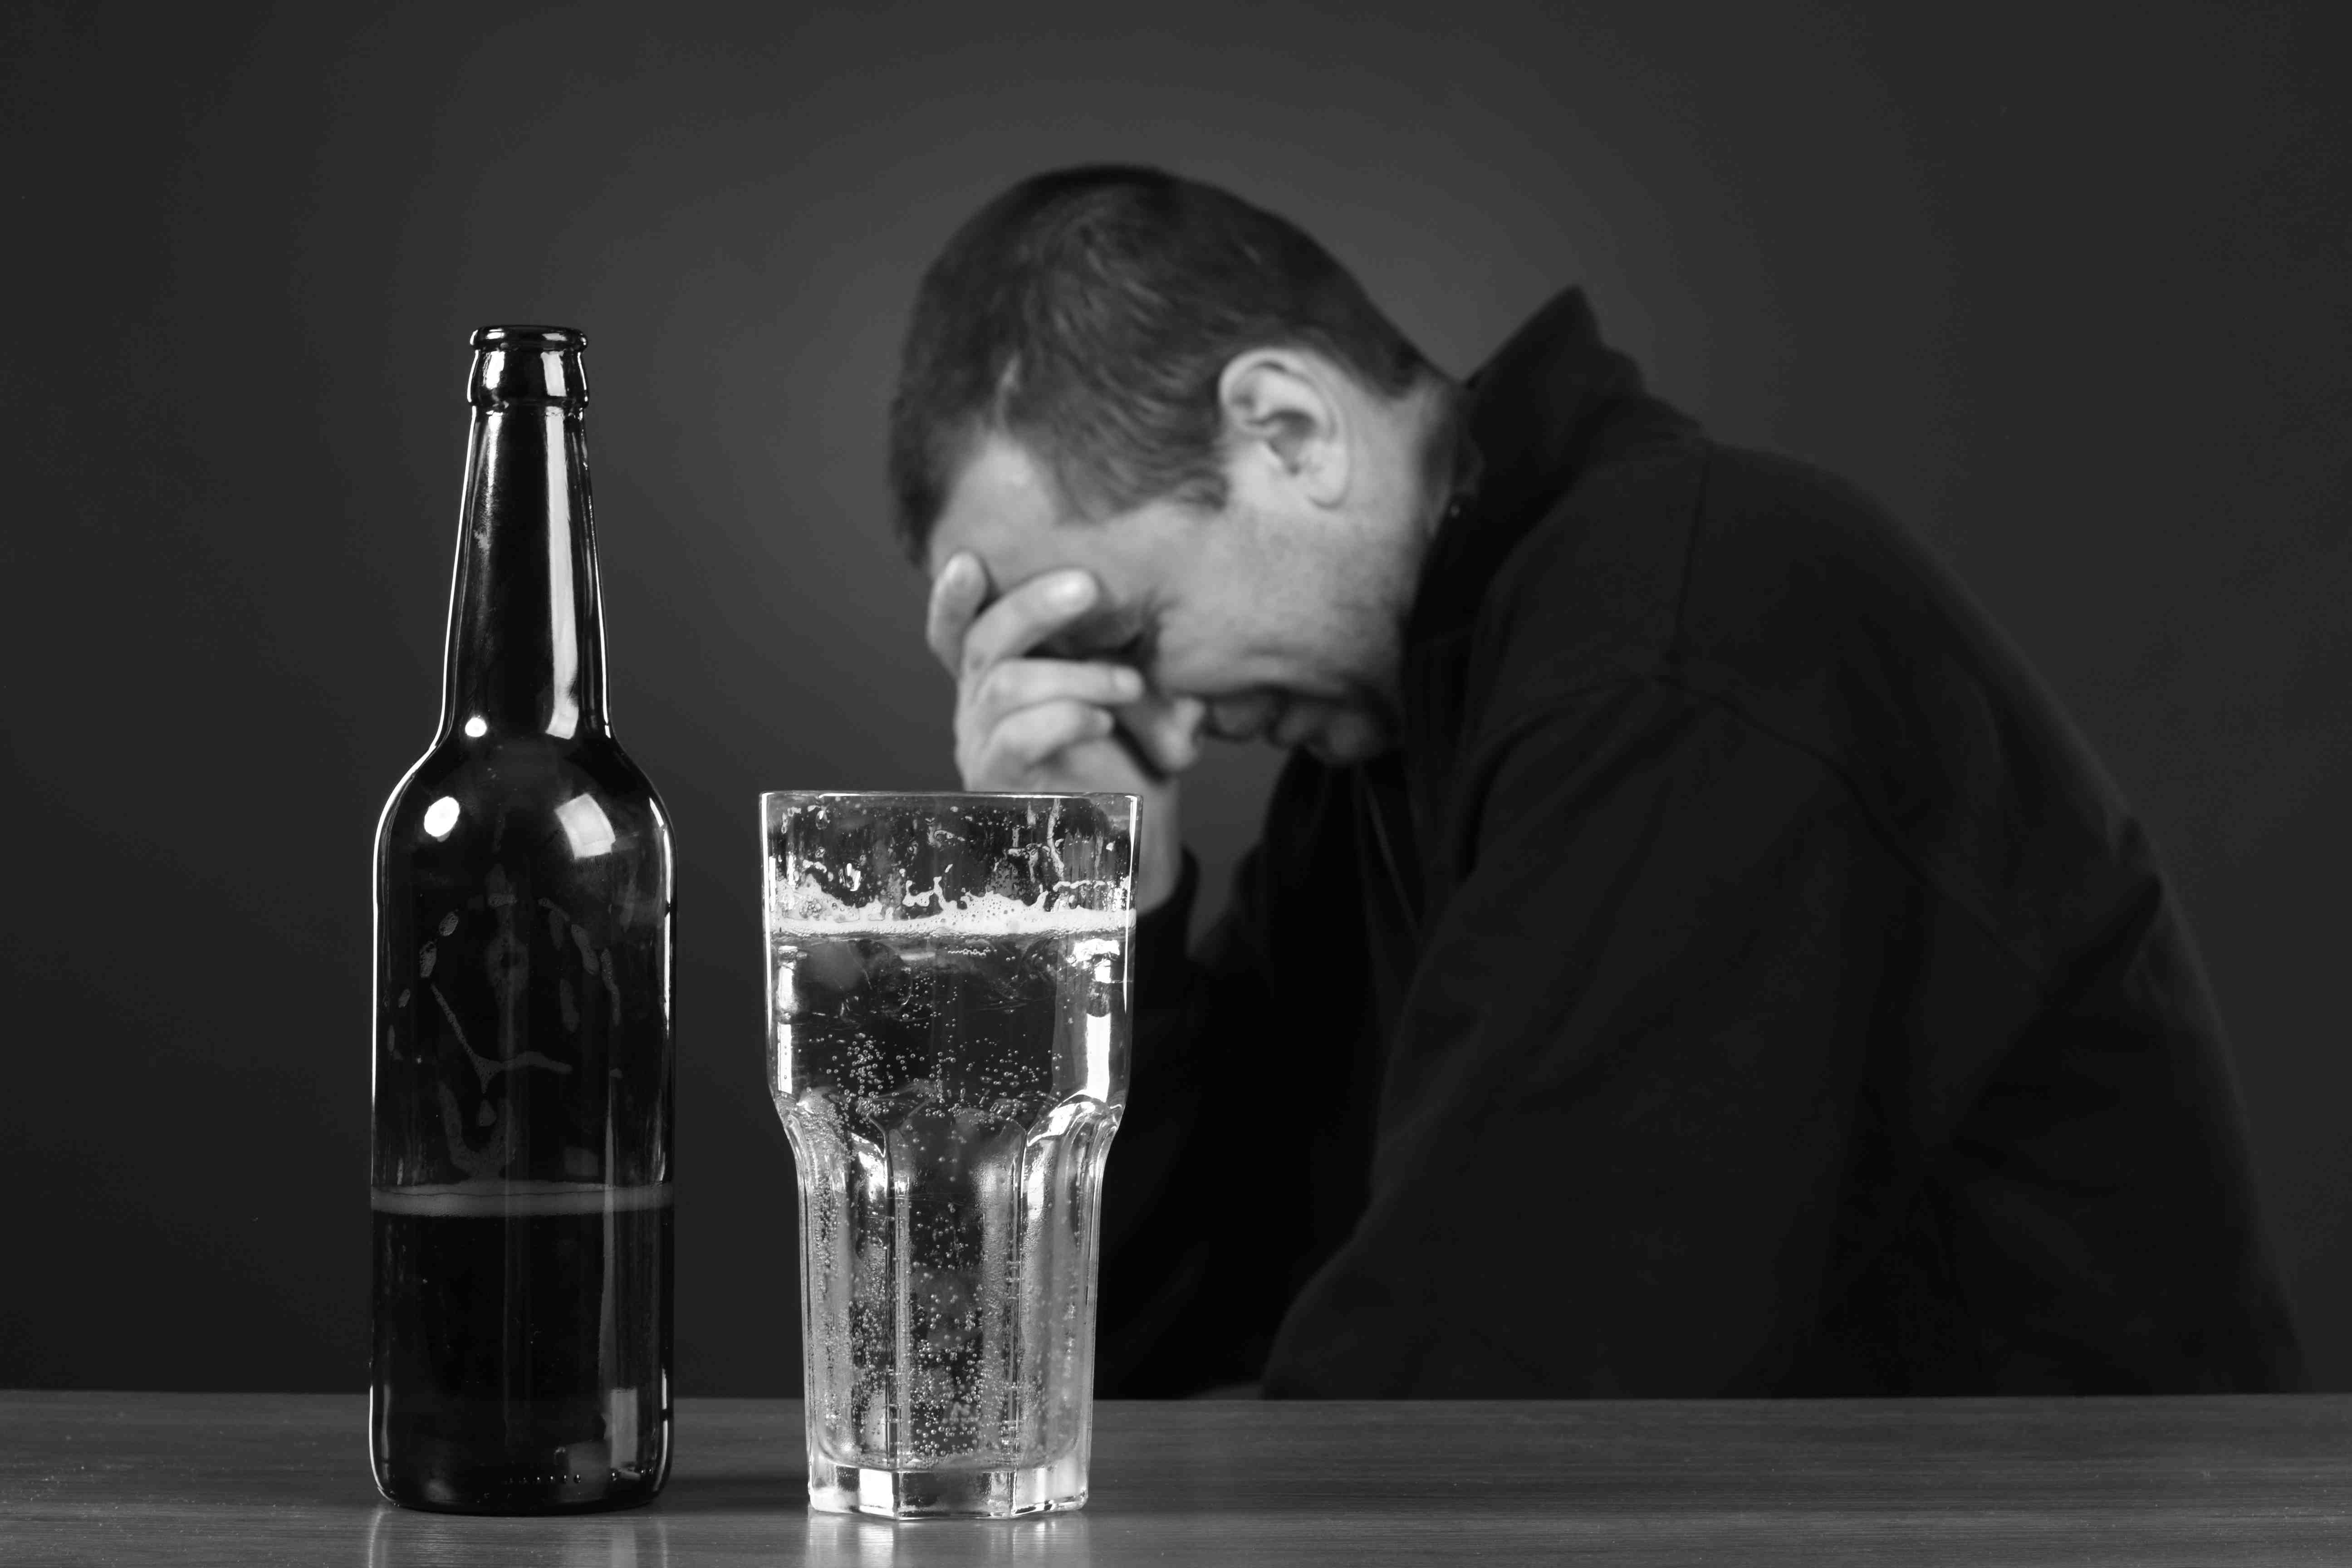 alcoholic abuse Problem drinkers don't have a full-fledged addiction to alcohol, but their drinking  may be taking a toll and  january 2, 2015 alcohol abuse and alcoholism.